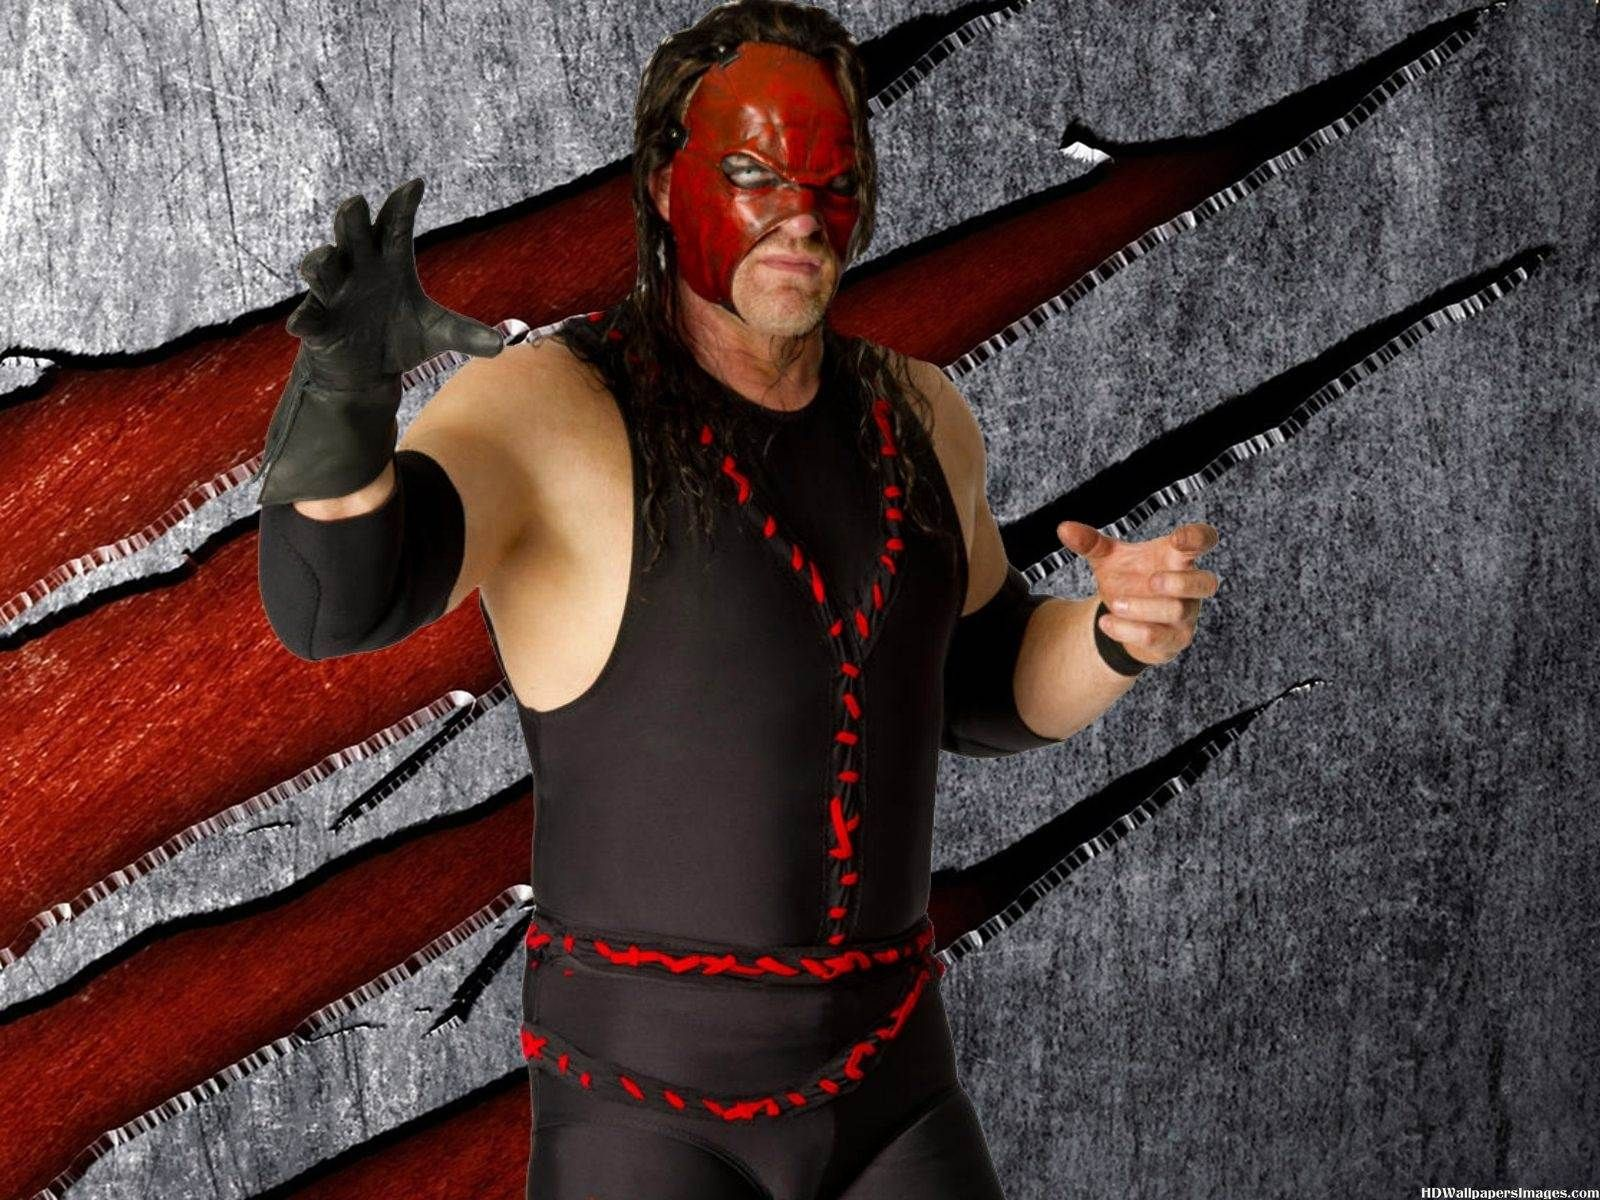 Wwe svr 11 kane takes off mask youtube.